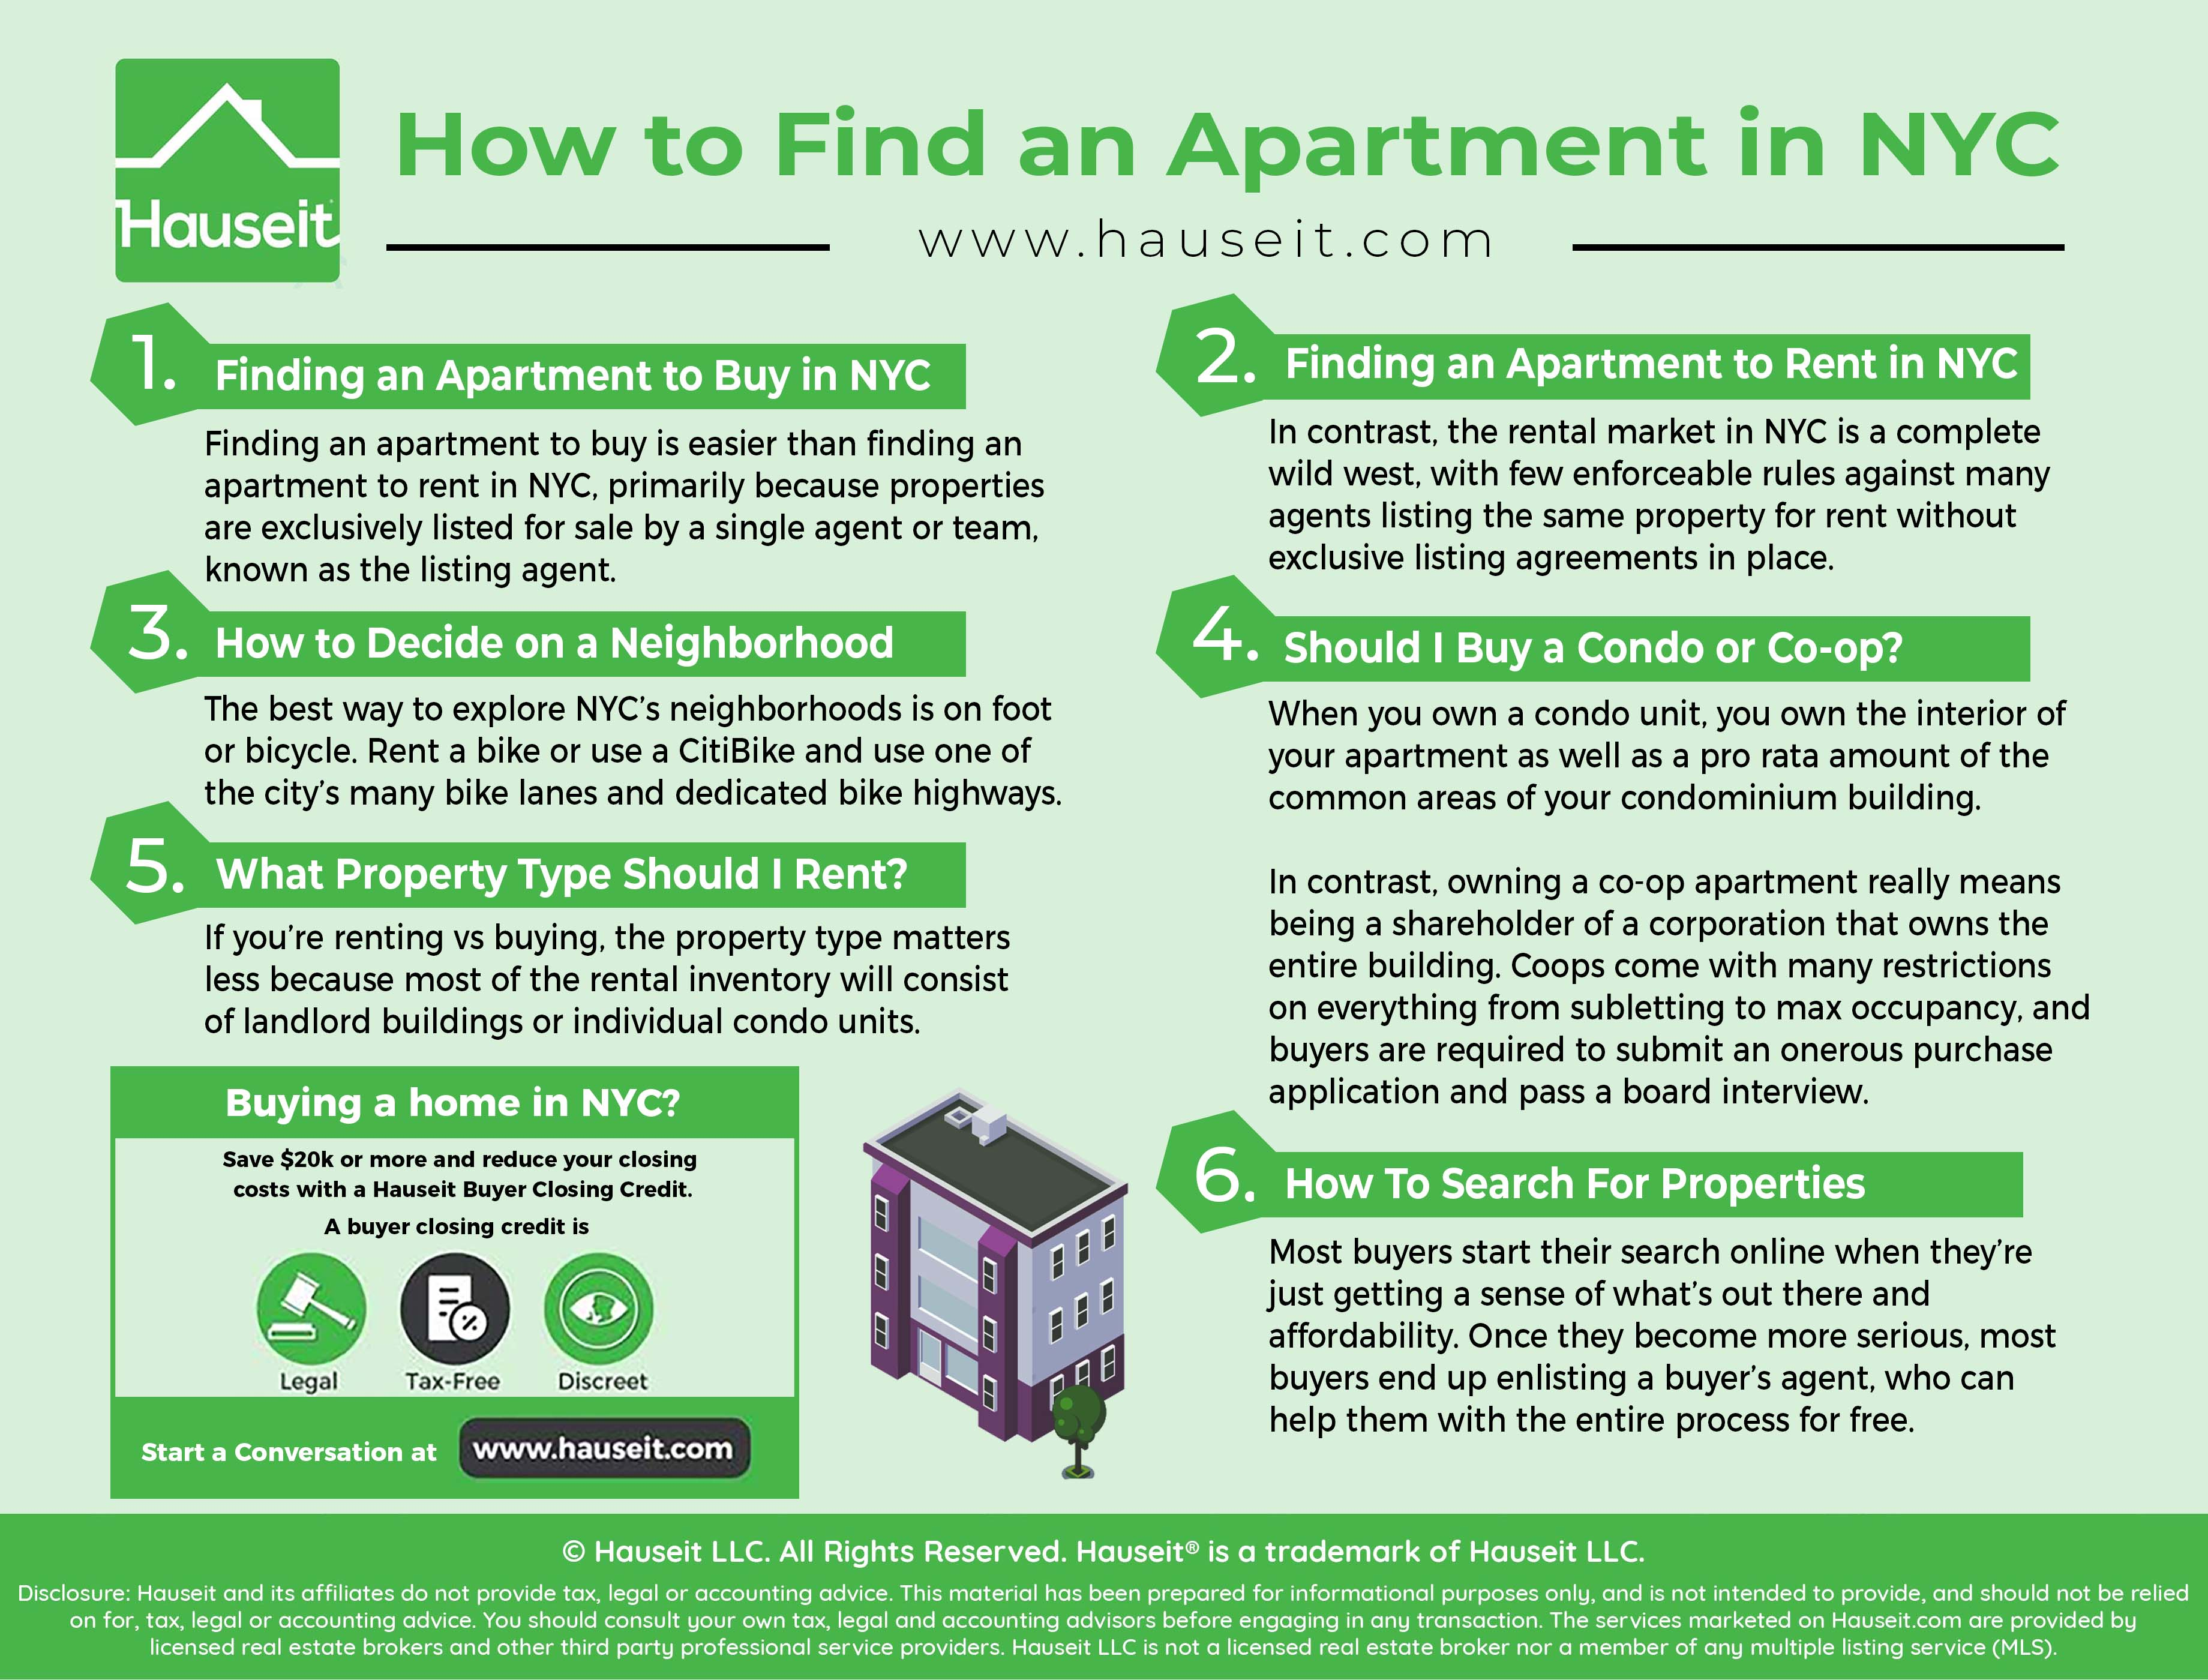 Finding An Apartment To Is Easier Than Rent In Nyc